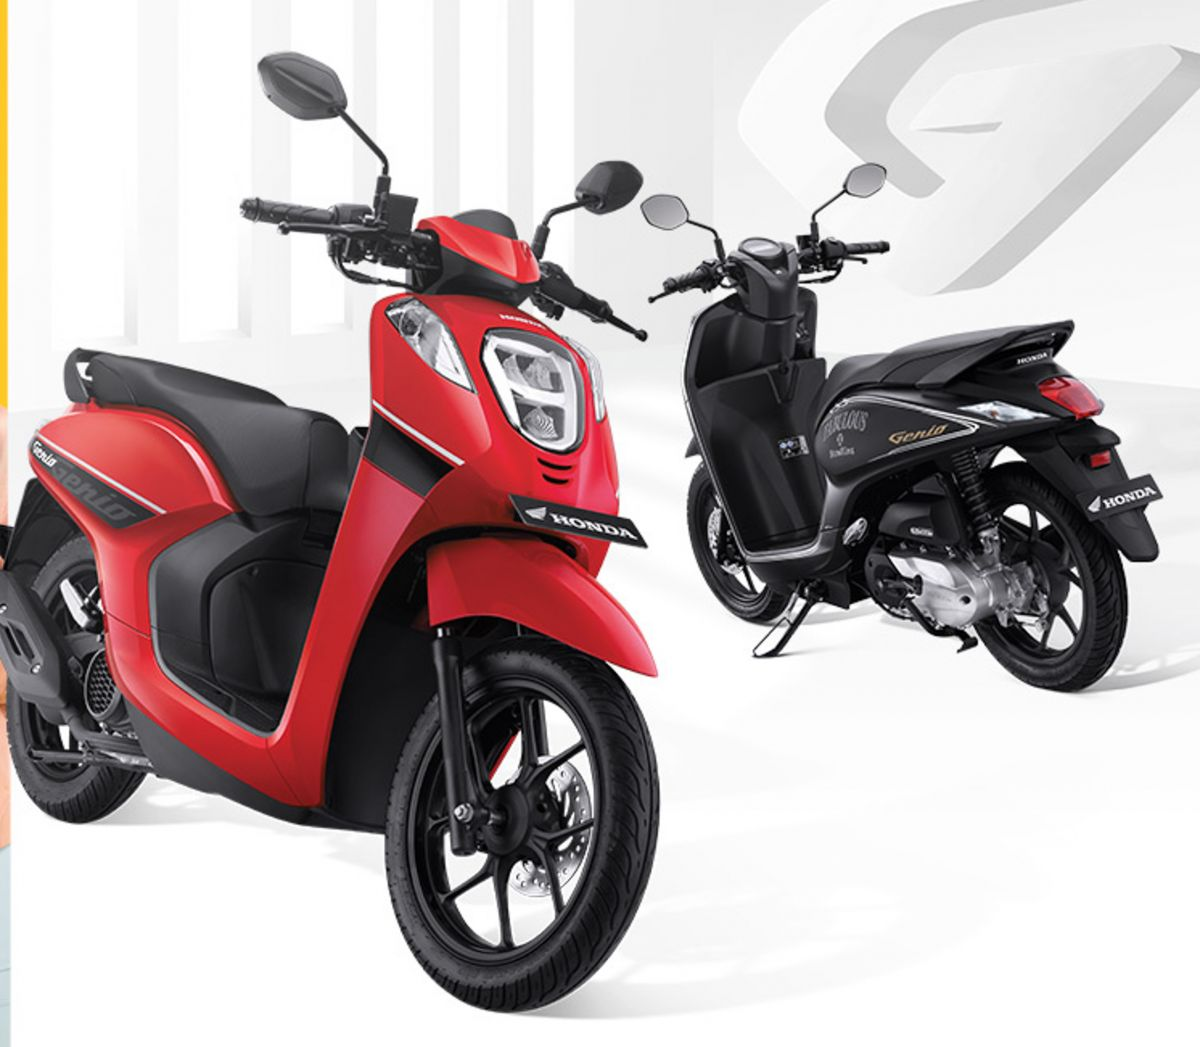 2019 Honda Genio launched in Indonesia - RM5,039